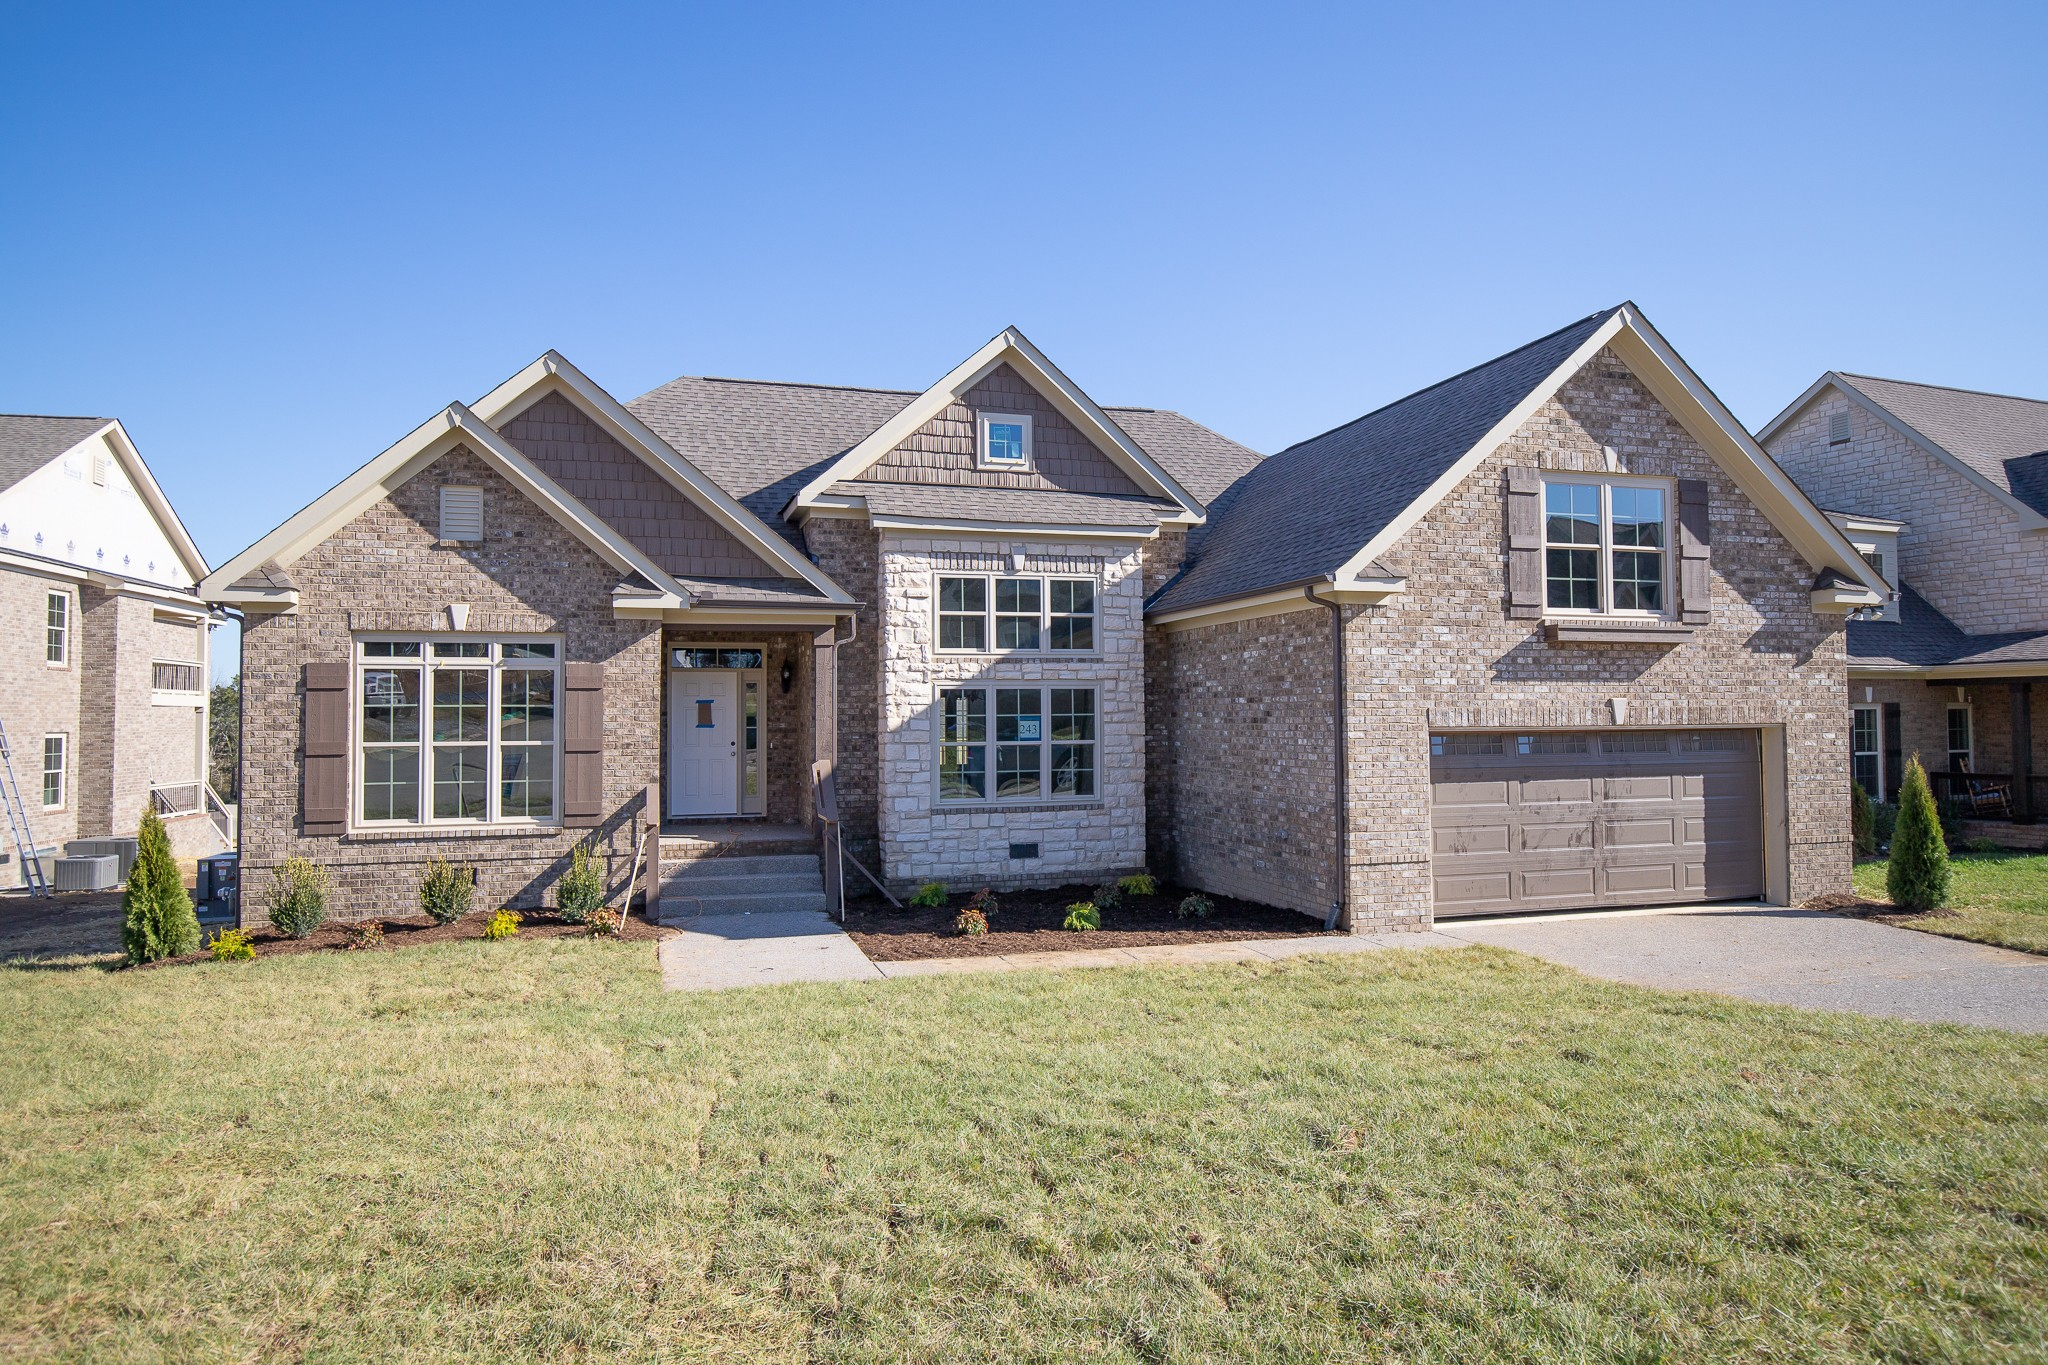 7001 Minor Hill Dr Lot 243, Spring Hill in Williamson County County, TN 37174 Home for Sale